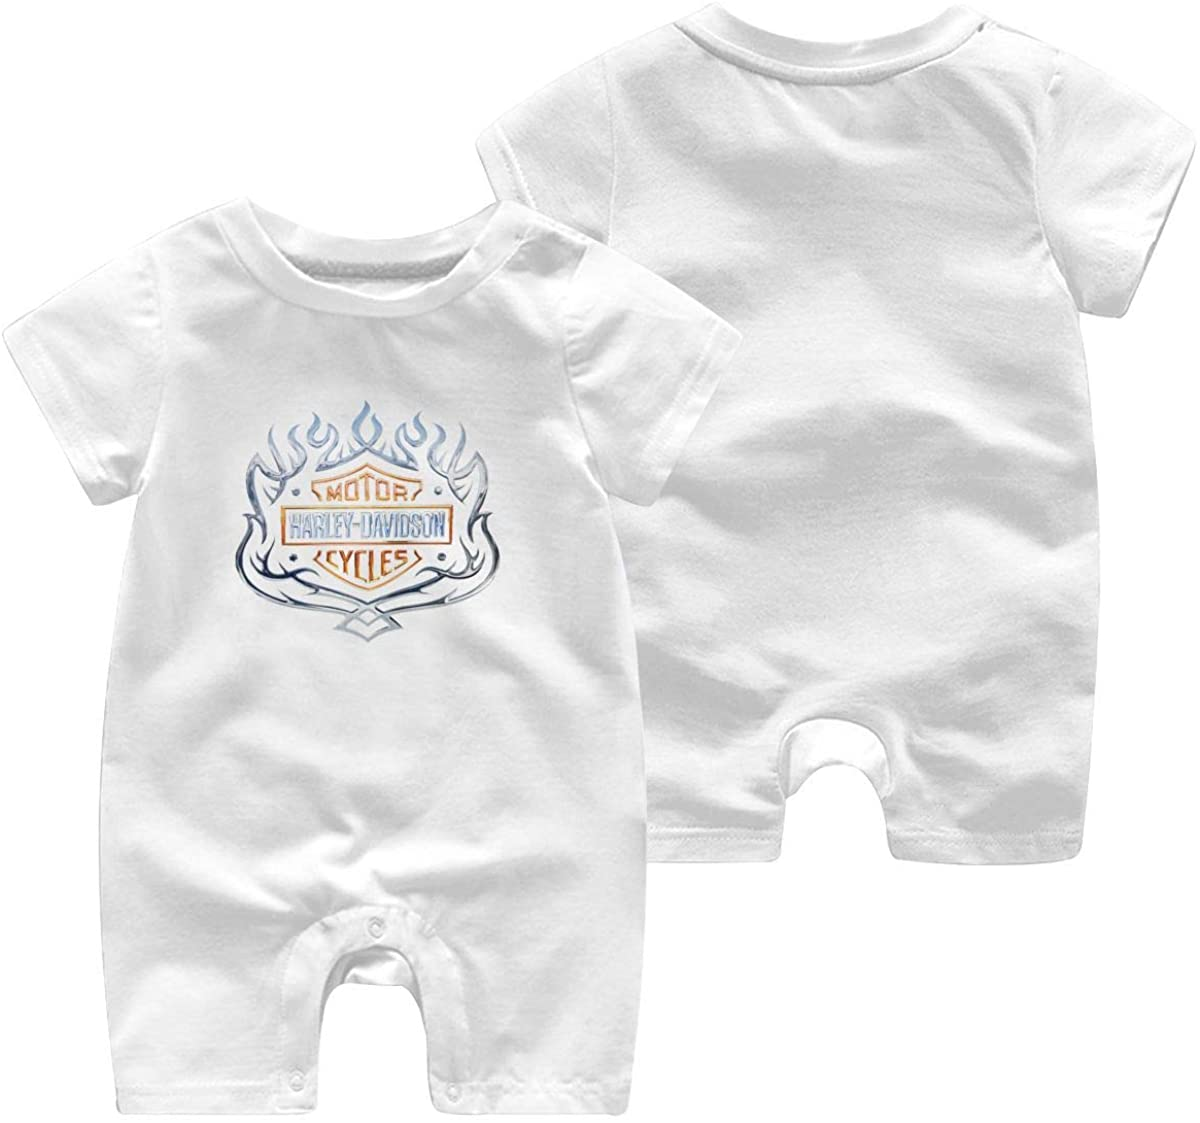 Harley Davidson One Piece Outfits Baby Solid Color Rompers with Button Kids Short Sleeve Playsuit Jumpsuits Cotton Clothing 12 Months White